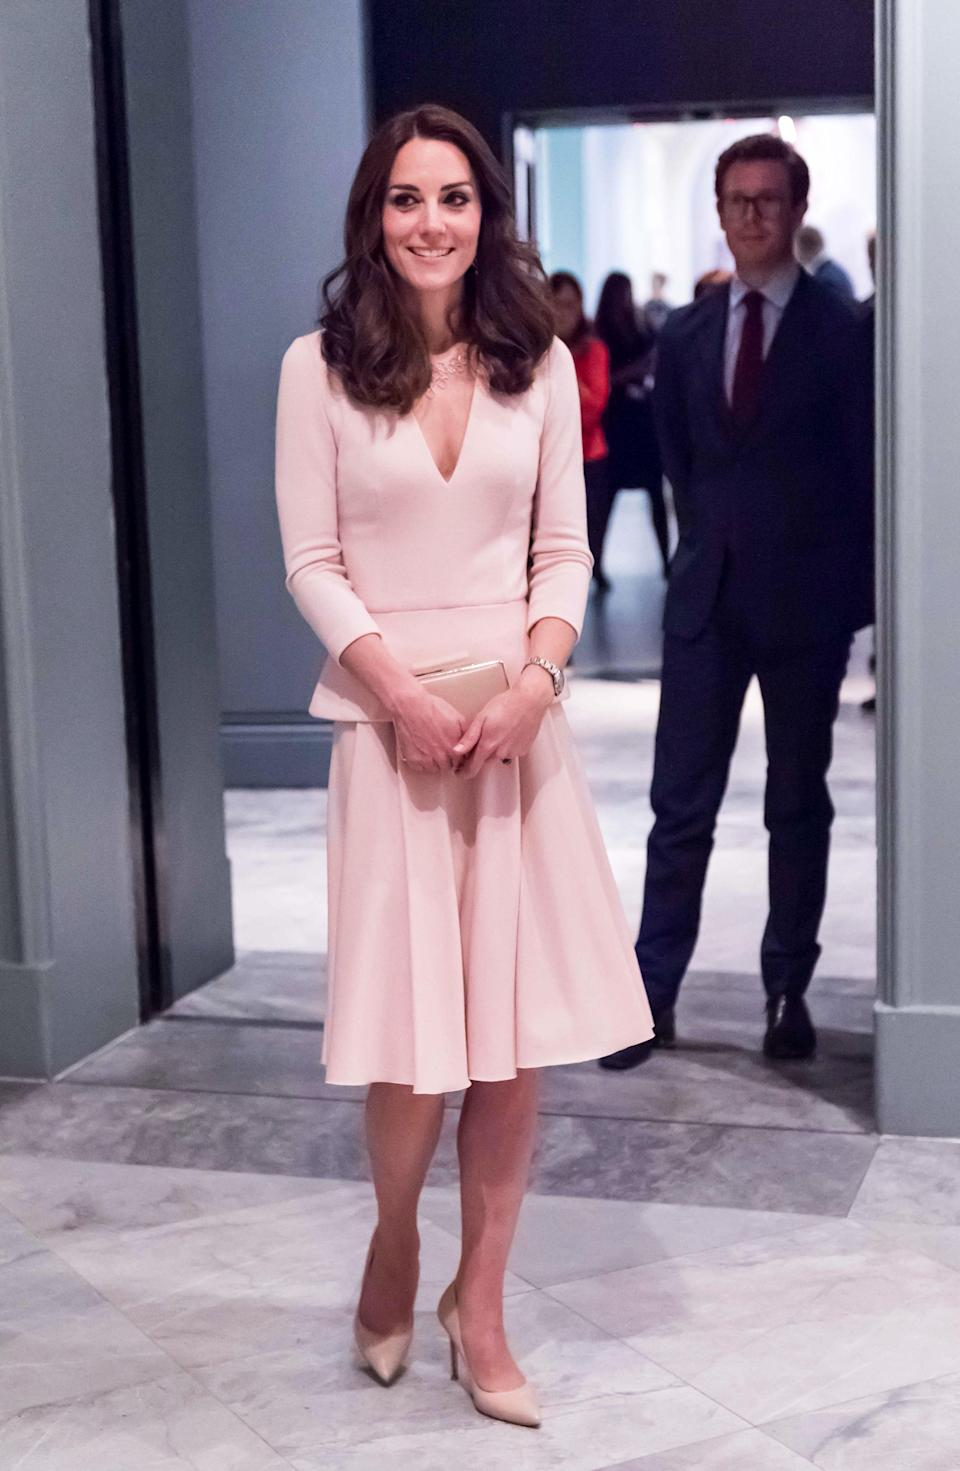 <p>The Duchess of Cambridge visited a Vogue exhibition at the National Portrait Gallery on May 4, 2016. For the event, she chose a sweet pink peplum dress by one of her favourite labels, Alexander McQueen. As usual, an L.K. Bennett clutch and shoes completed her ensemble. <em>[Photo: Getty]</em> </p>